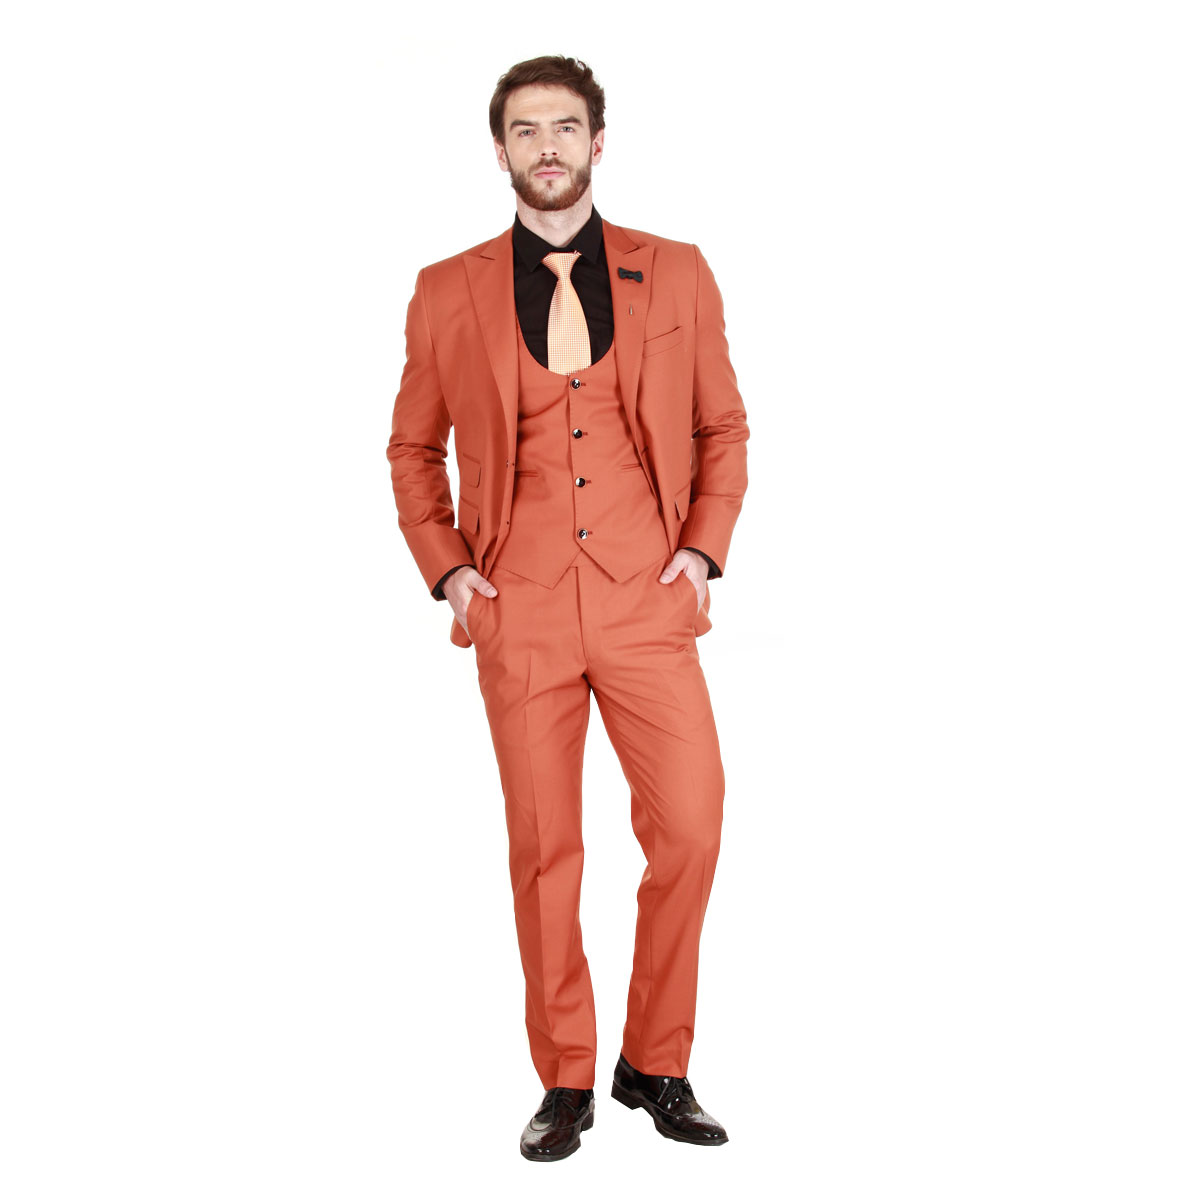 Royal Orange Suit - Premium Bespoke Suits Online. Men's Clothing ...